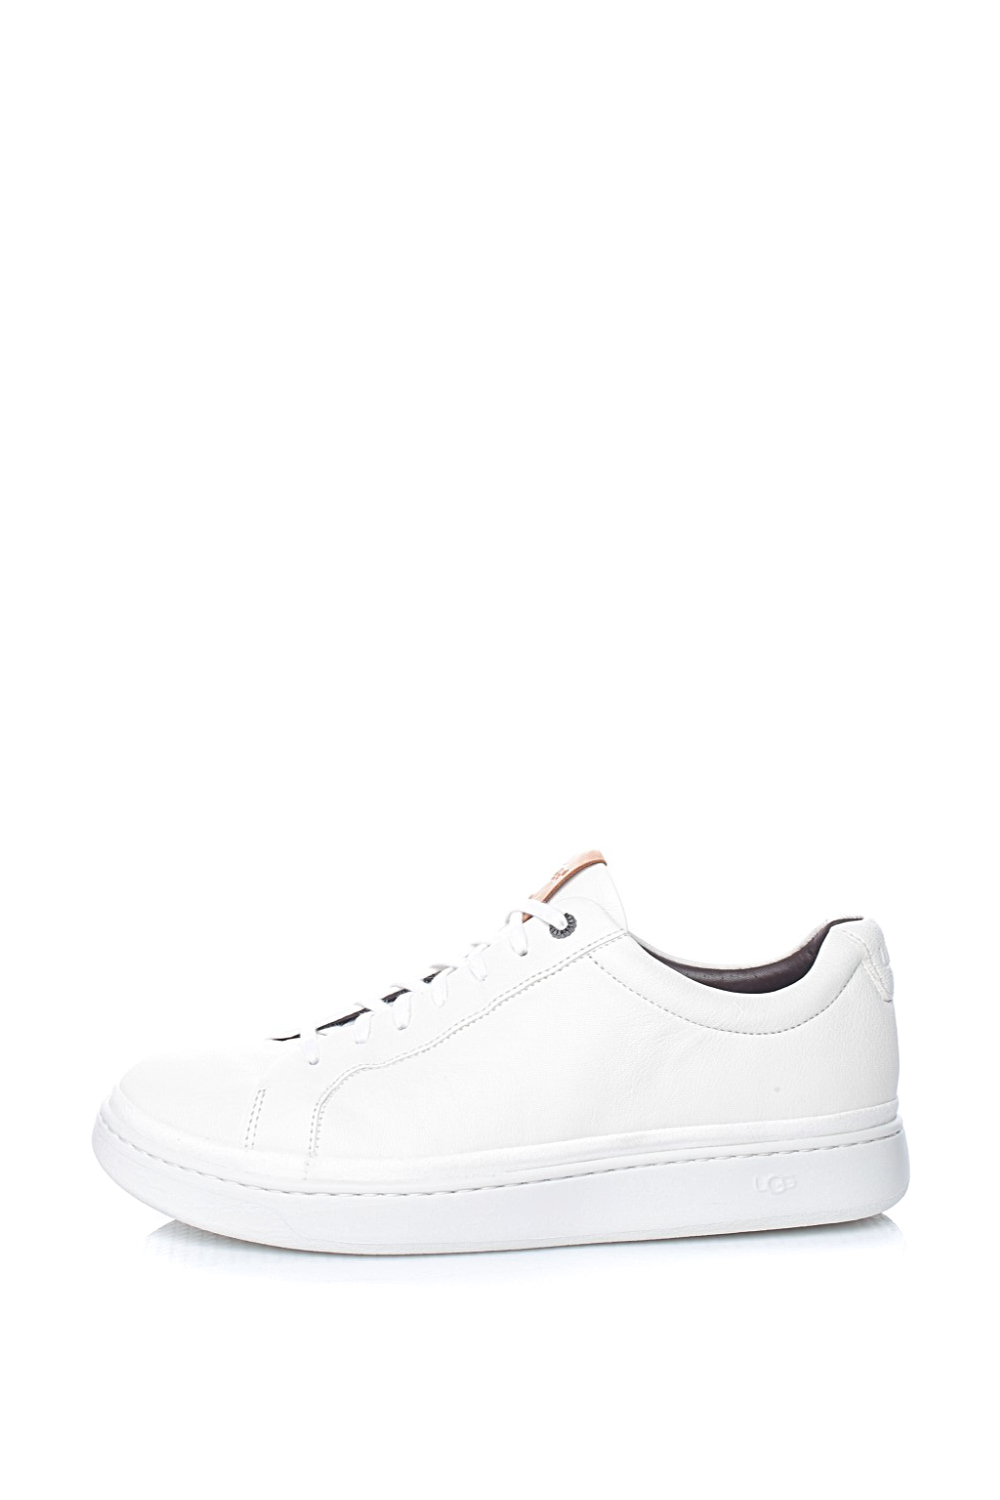 08cbf738926 -15% Collective Online UGG AUSTRALIA – Ανδρικά sneakers UGG BRECKEN LACE  LOW λευκά